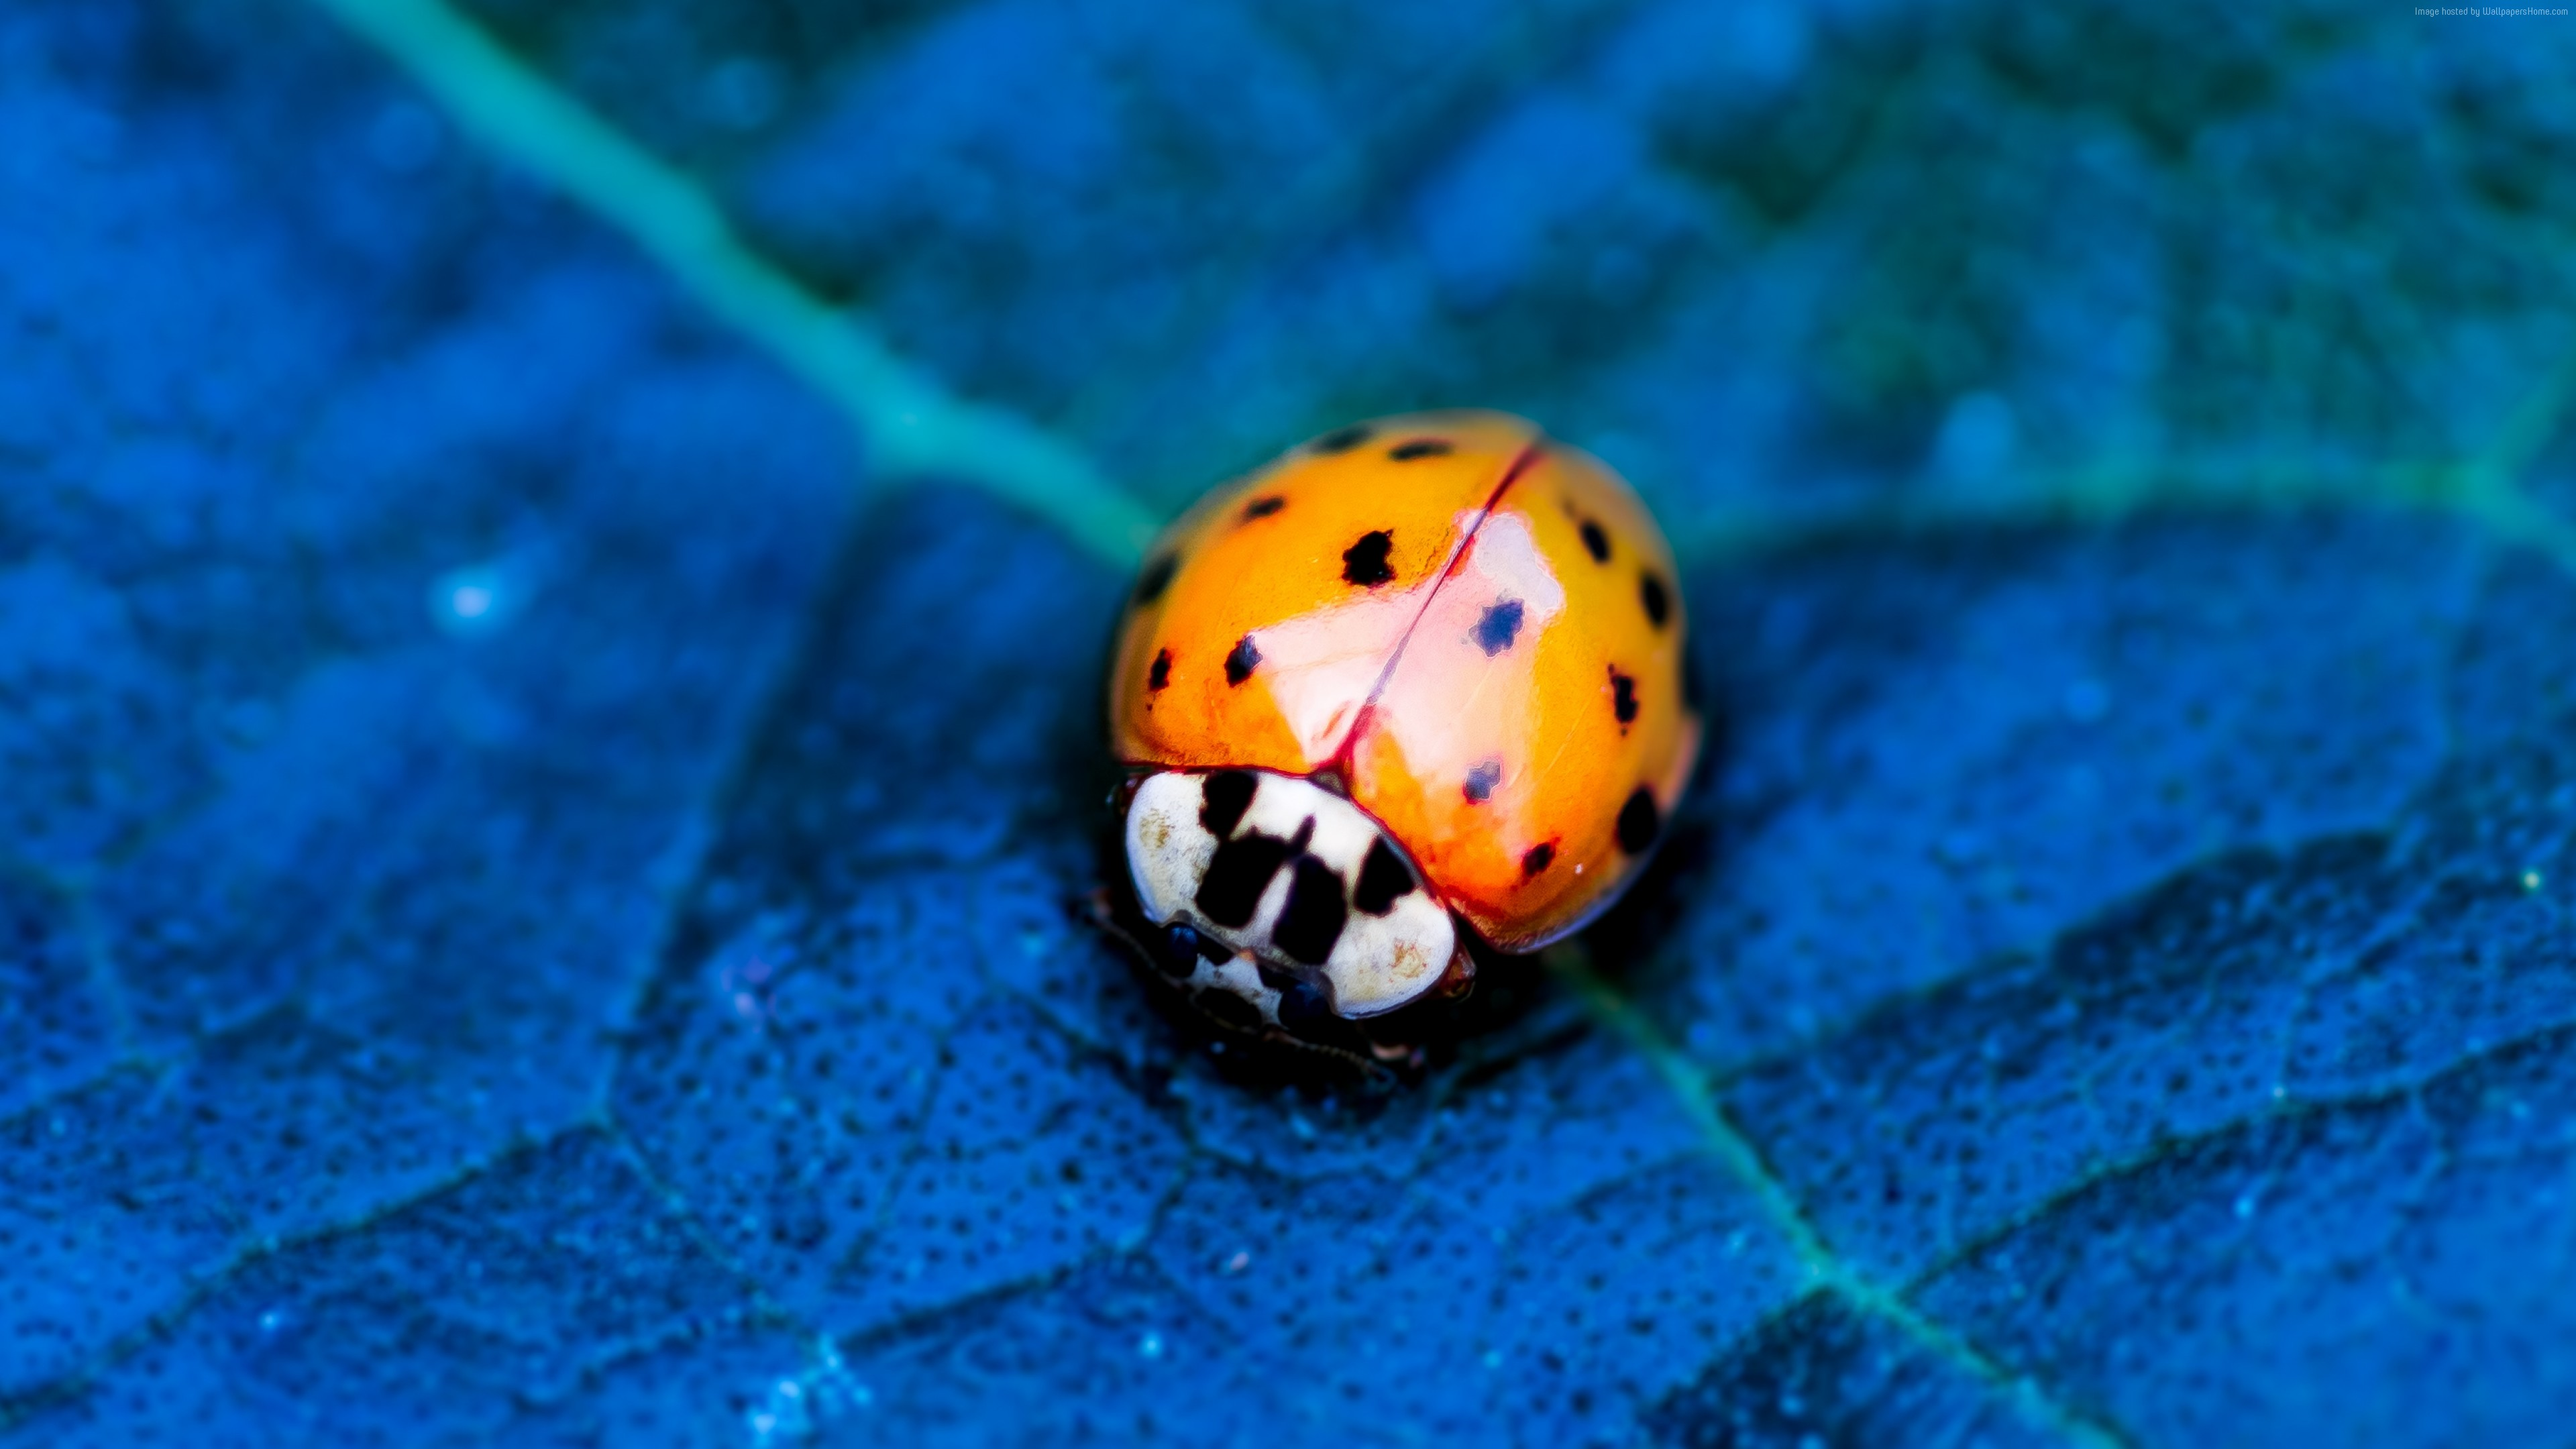 Wallpaper ladybird, beetle, flower, blue, Animals